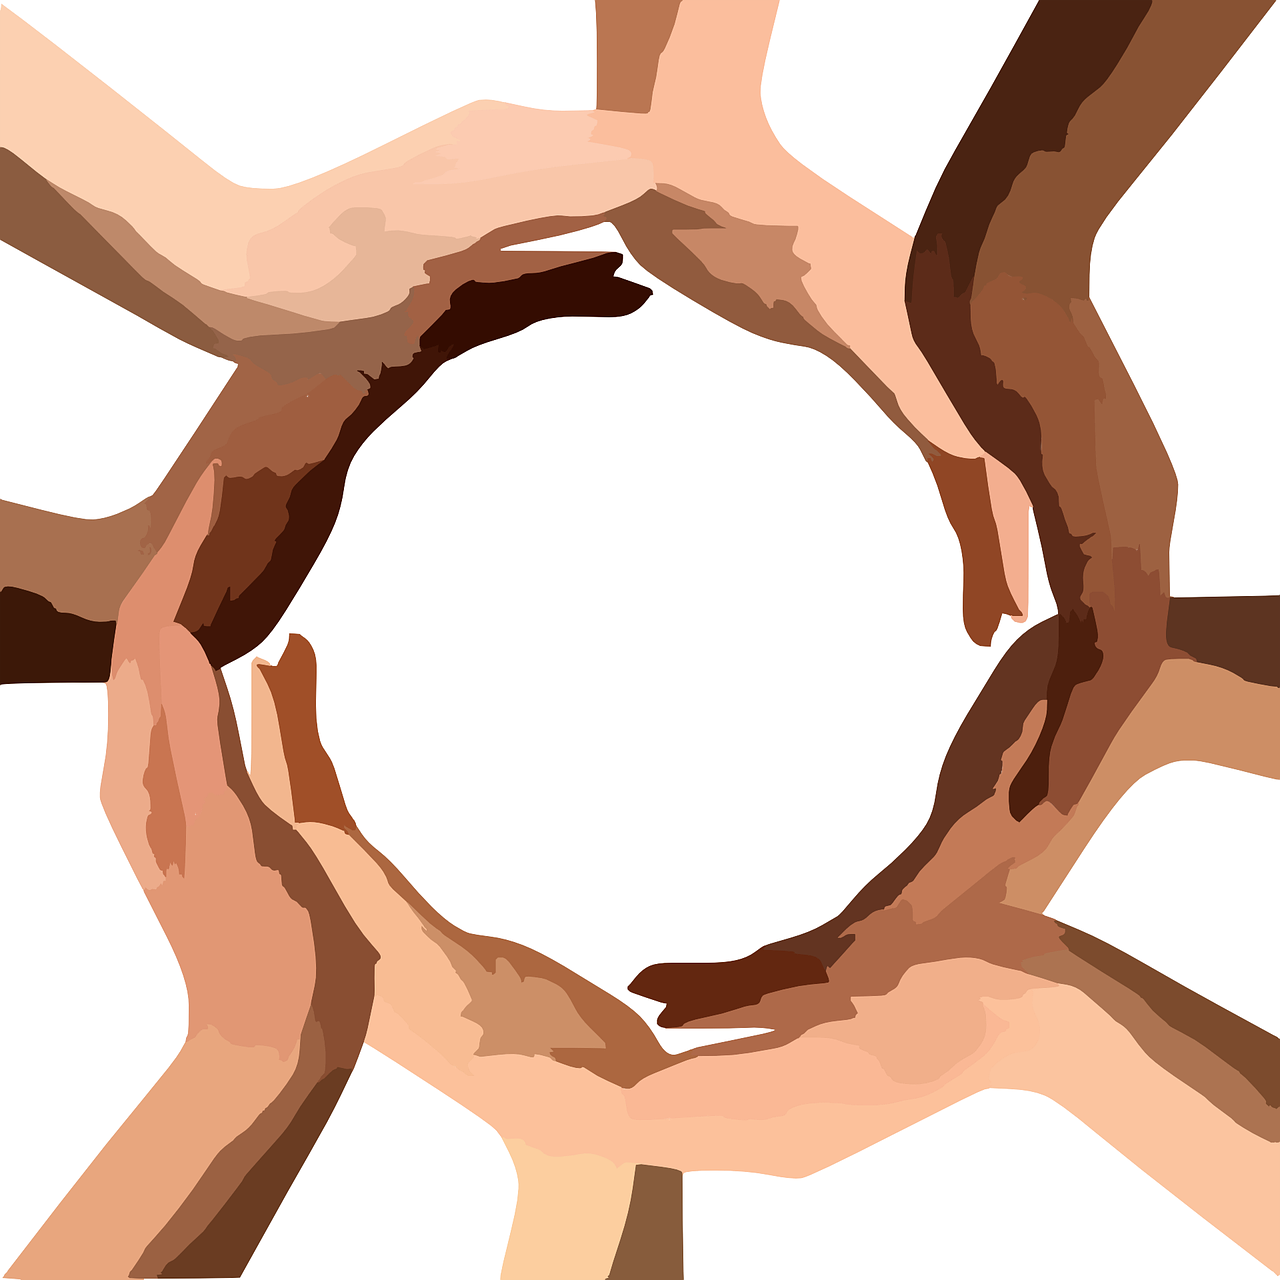 Black and white hands in a circle.